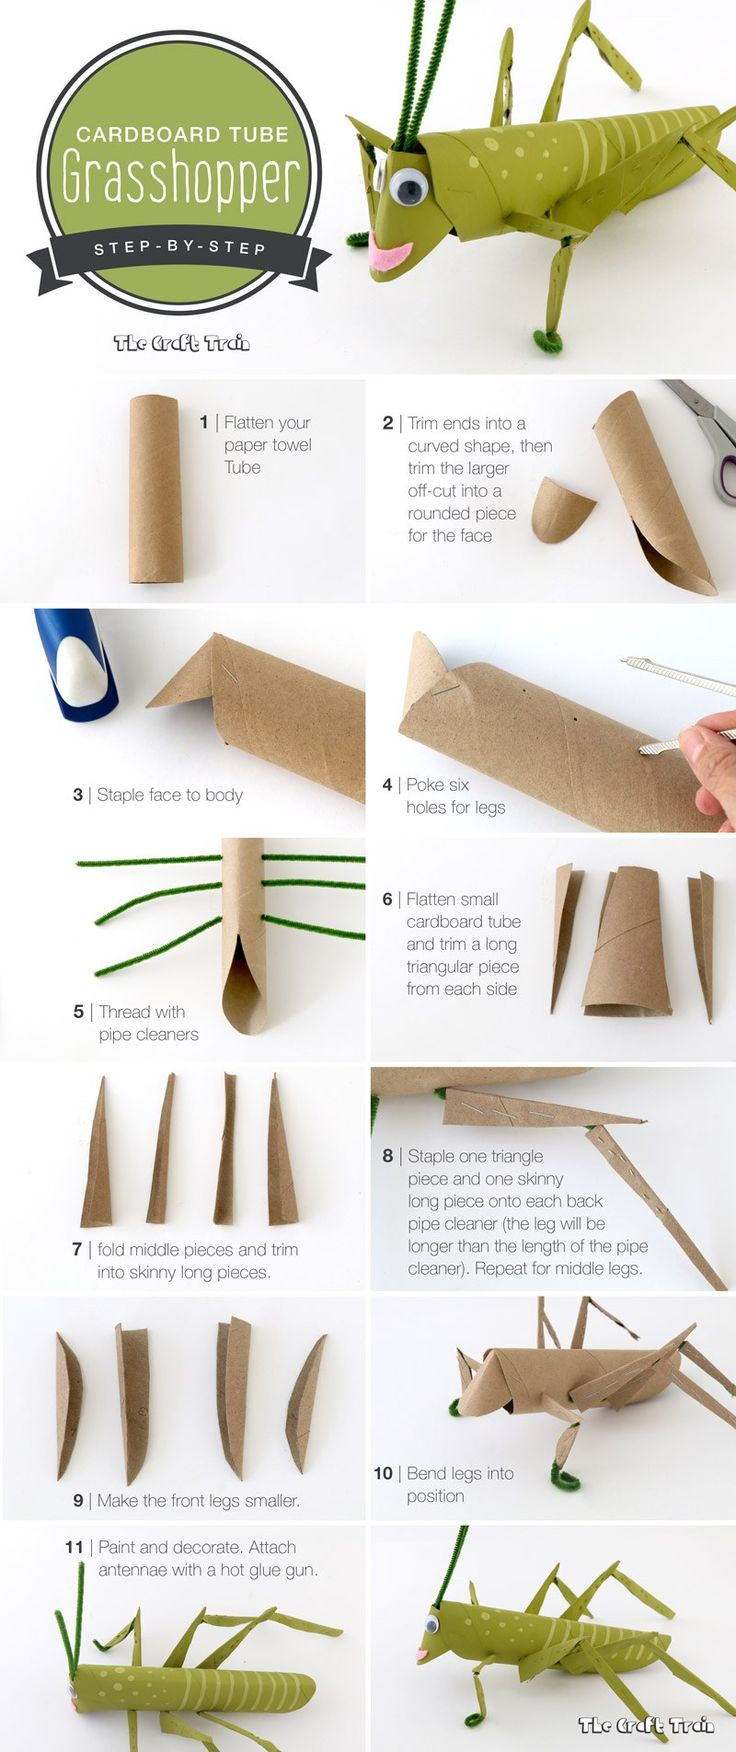 Step-by-step instructions on how to make a cardboard tube grasshopper. This is a fun craft for kids using recyclables.